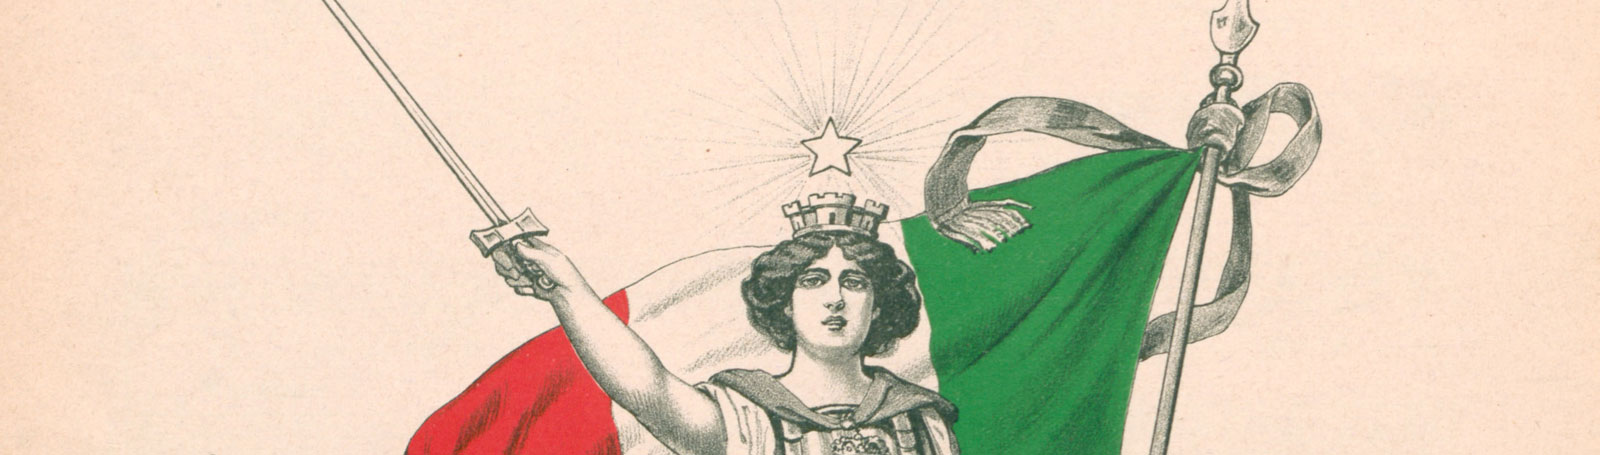 Italy personified as a woman standing tall and holding out a sword. Behind her stands the Italian flag in full colour of red, white and green.